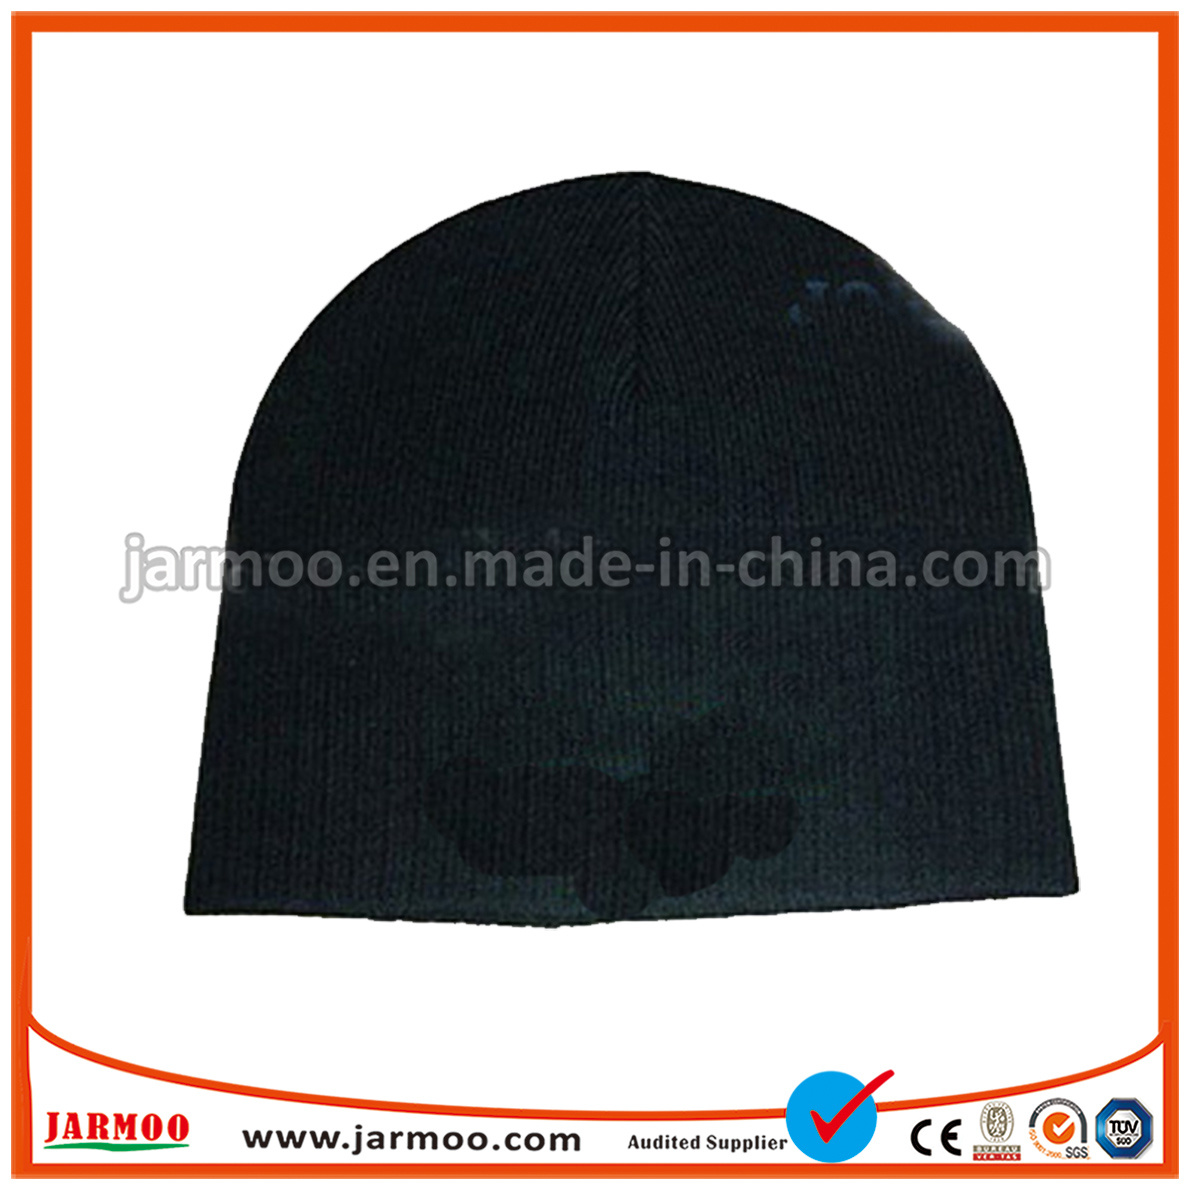 59b088fc73e China Design Your Own Custom Logo Winter Knit Cap Hats Women Beanie ...